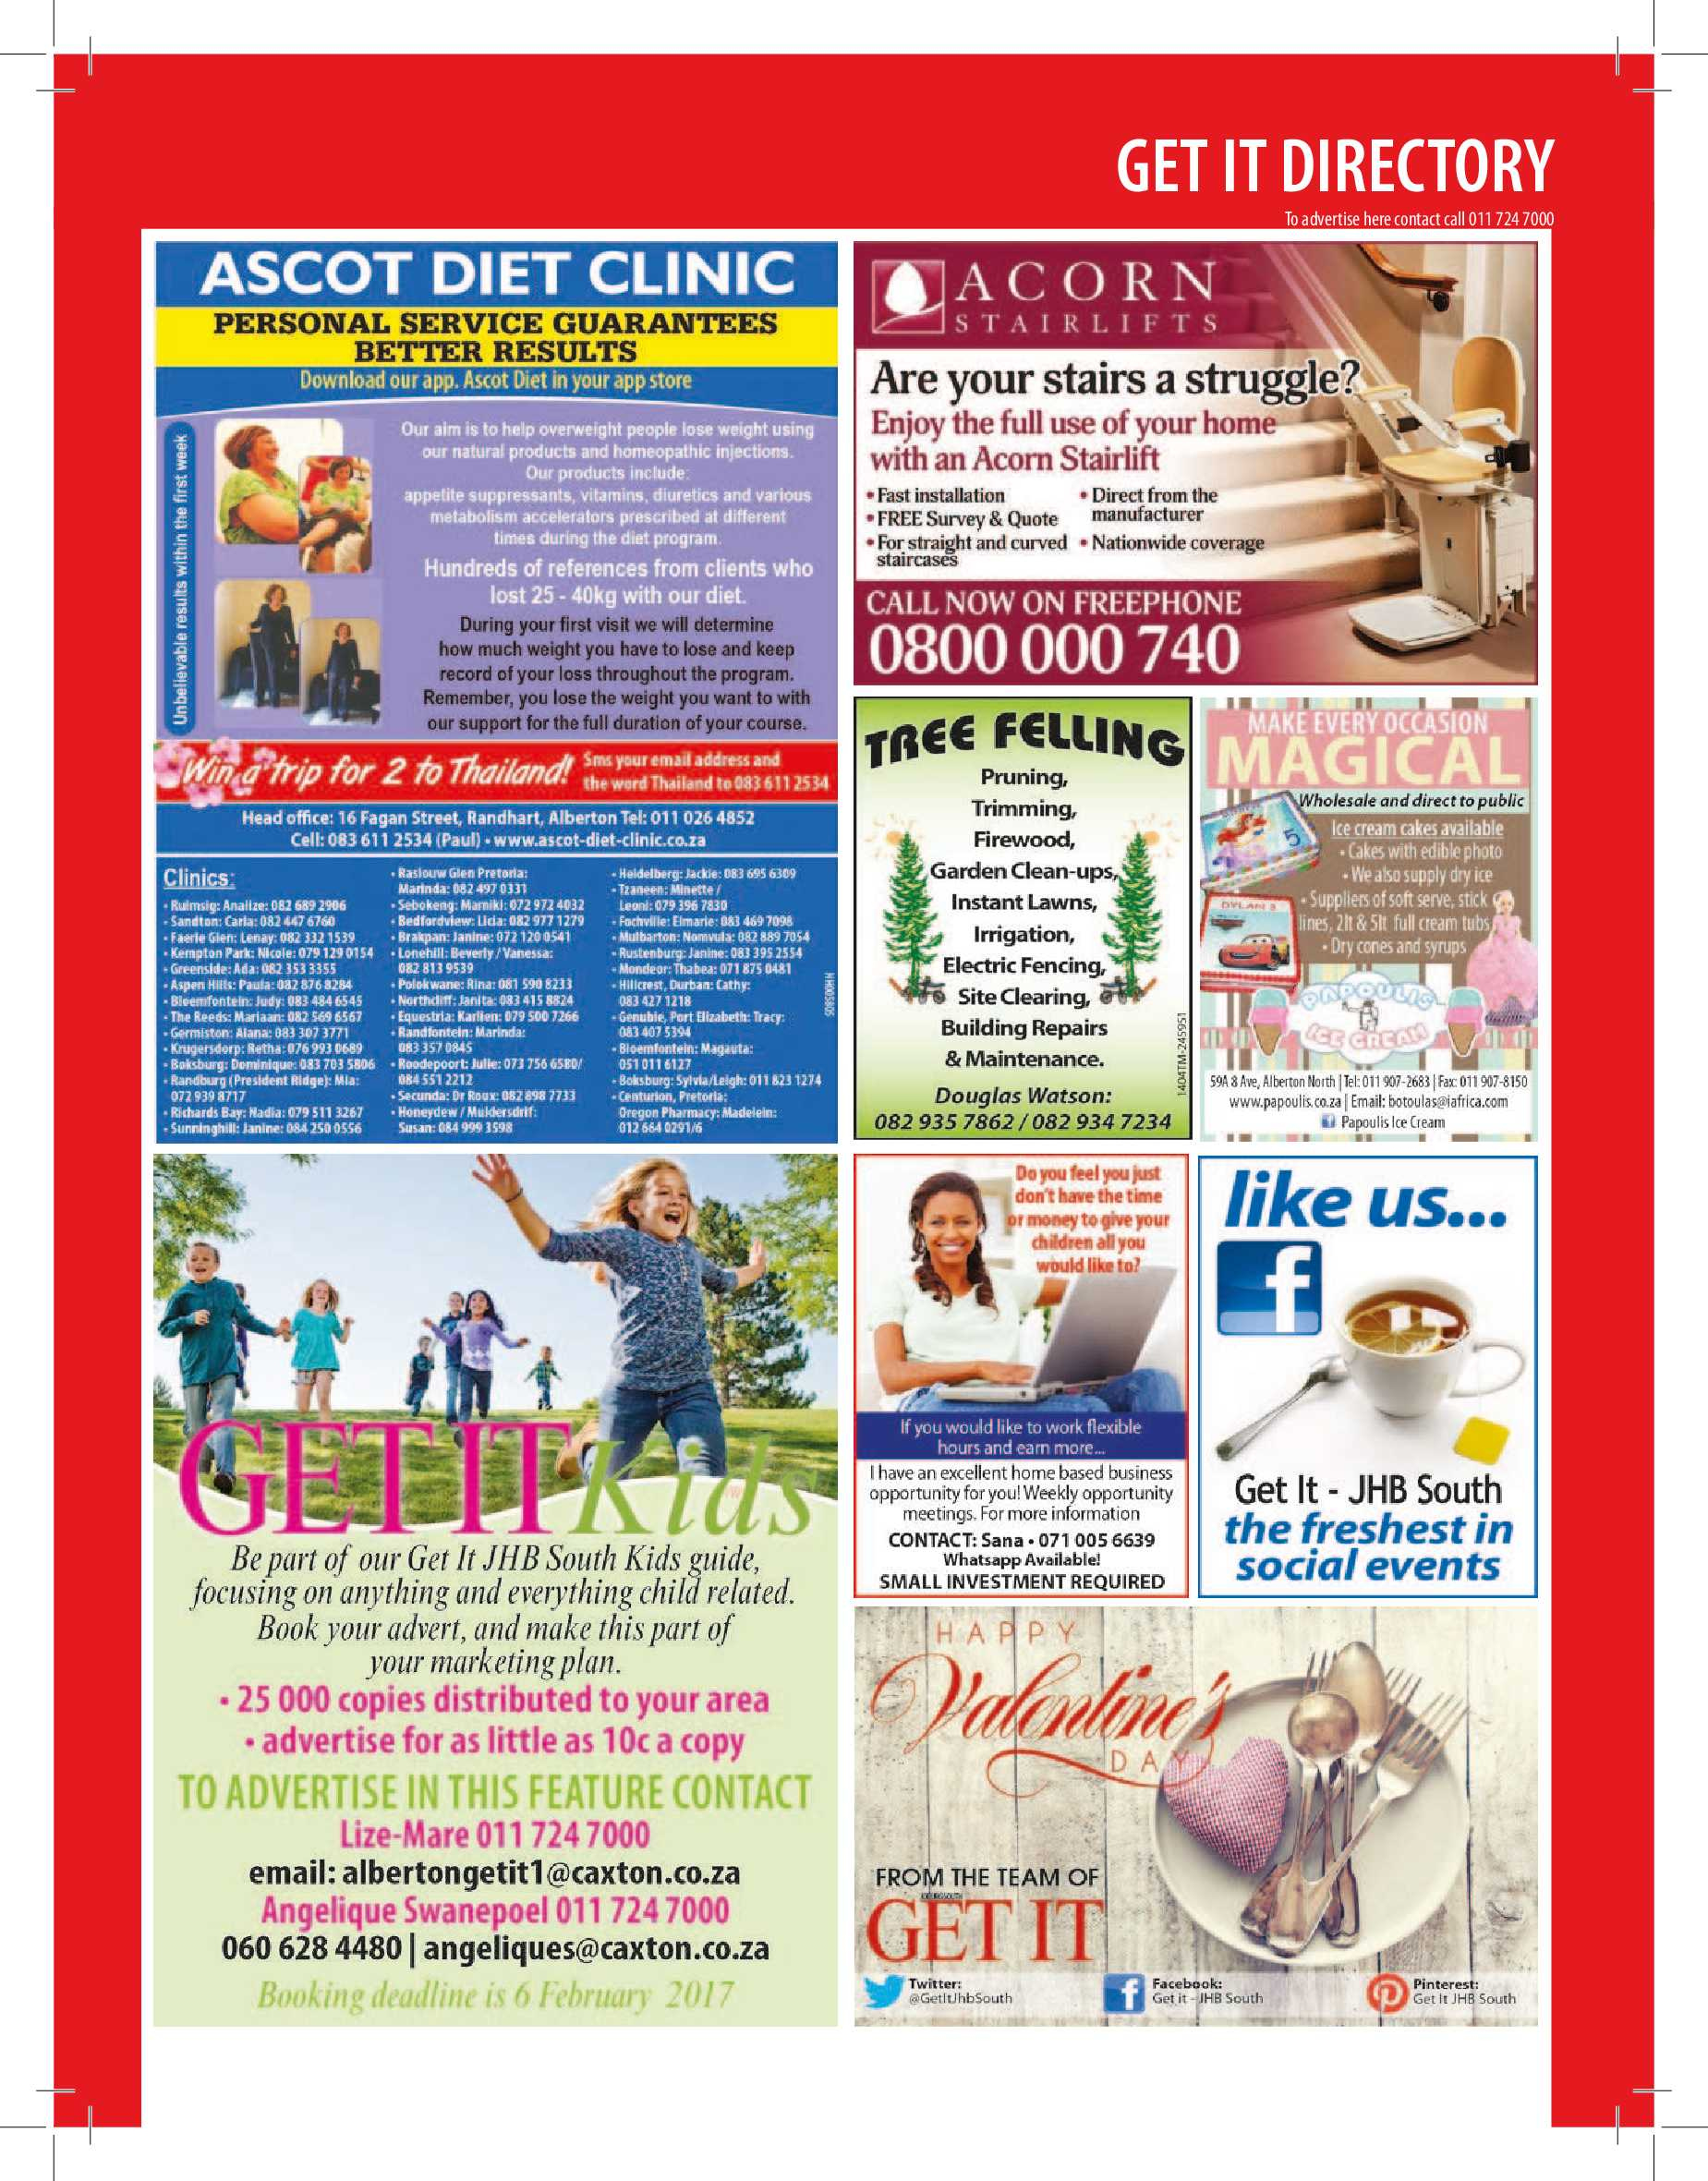 get-it-south-february-2017-epapers-page-33